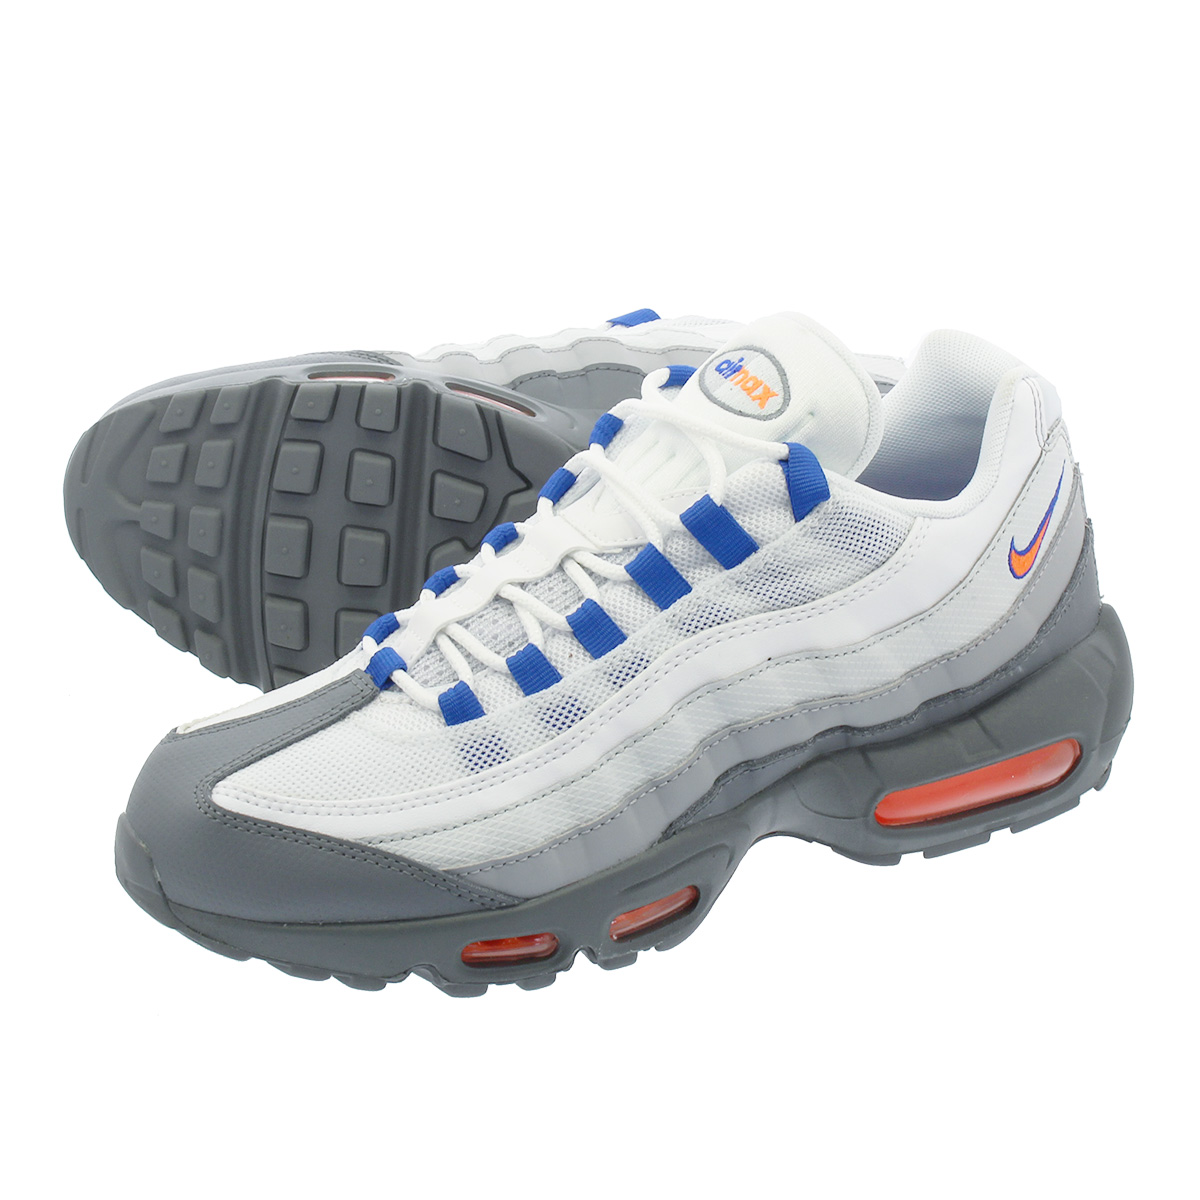 Men's New Nike Air Max 95 Essential Athletic Fashion Sneakers [749766 033]